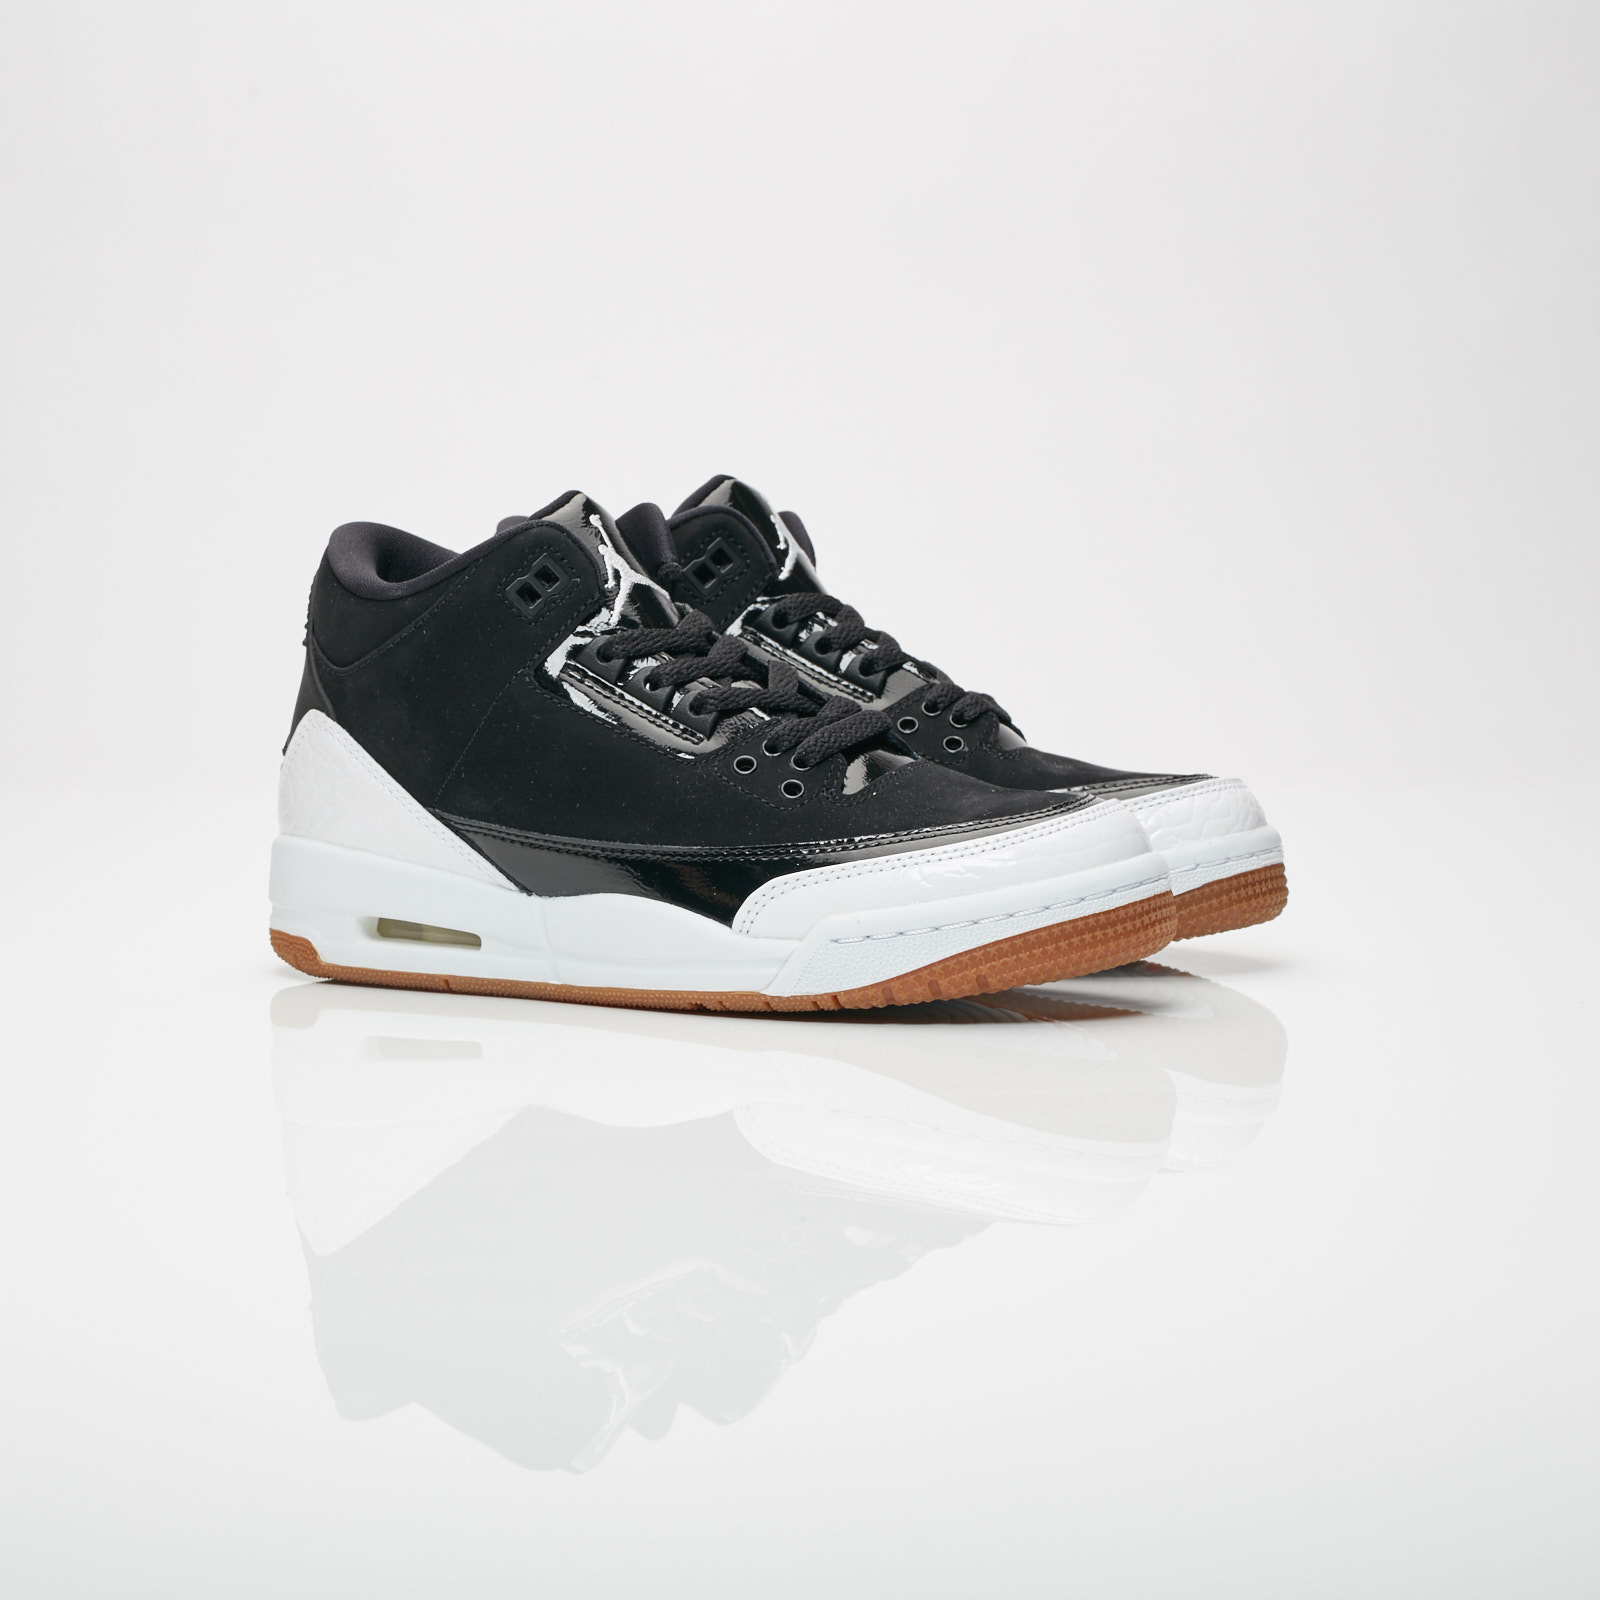 286039831e2b Jordan Brand Air Jordan 3 Retro GS - 441140-022 - Sneakersnstuff ...